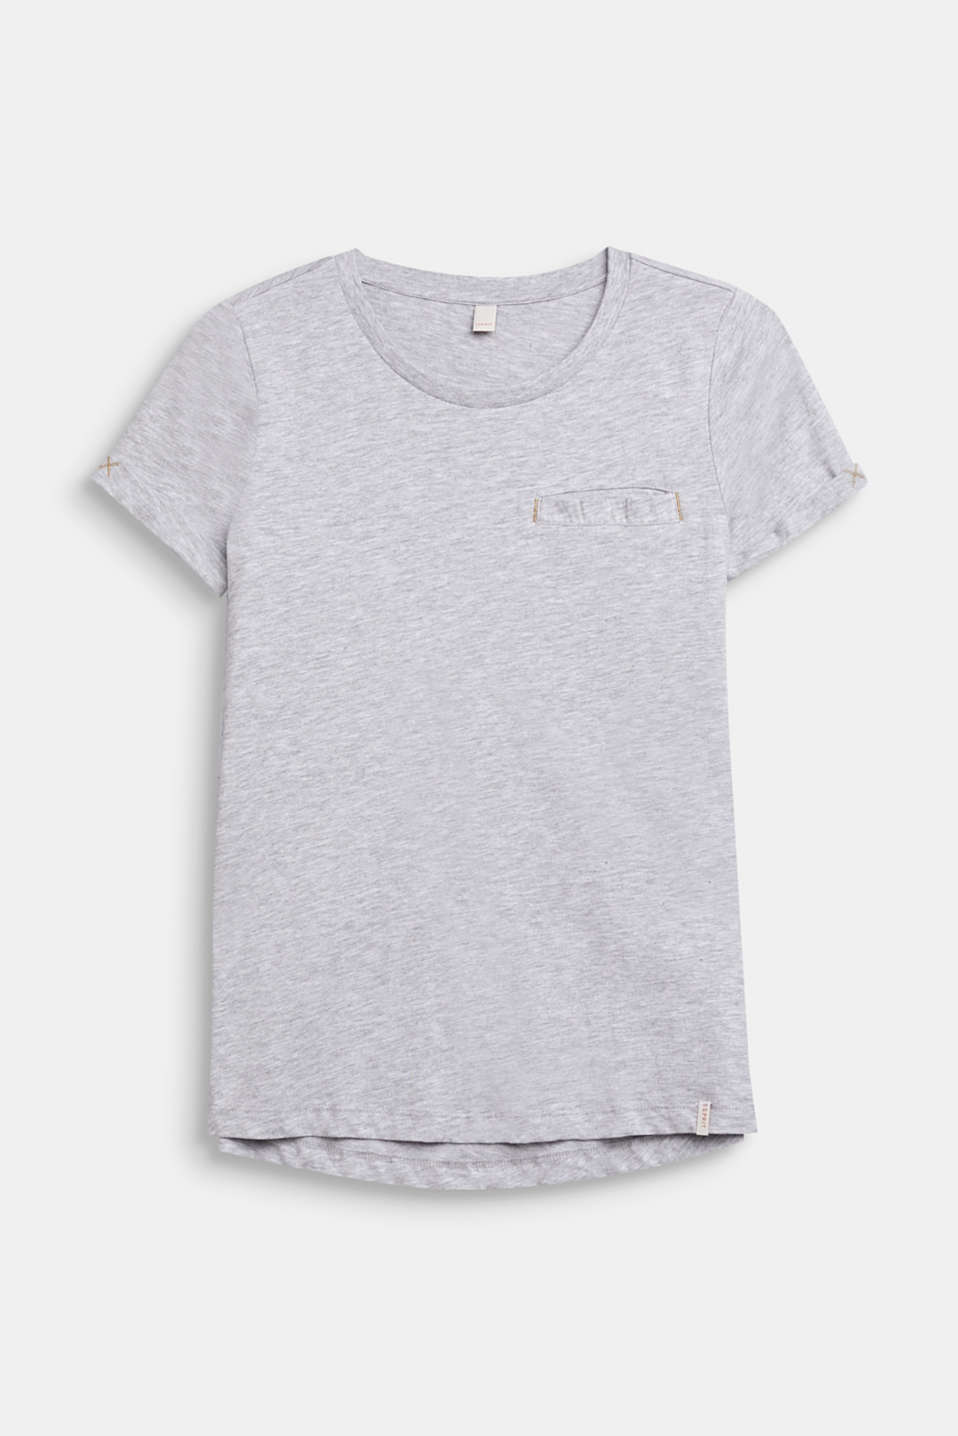 Mottled T-shirt with a breast pocket, LCHEATHER SILVER, detail image number 0